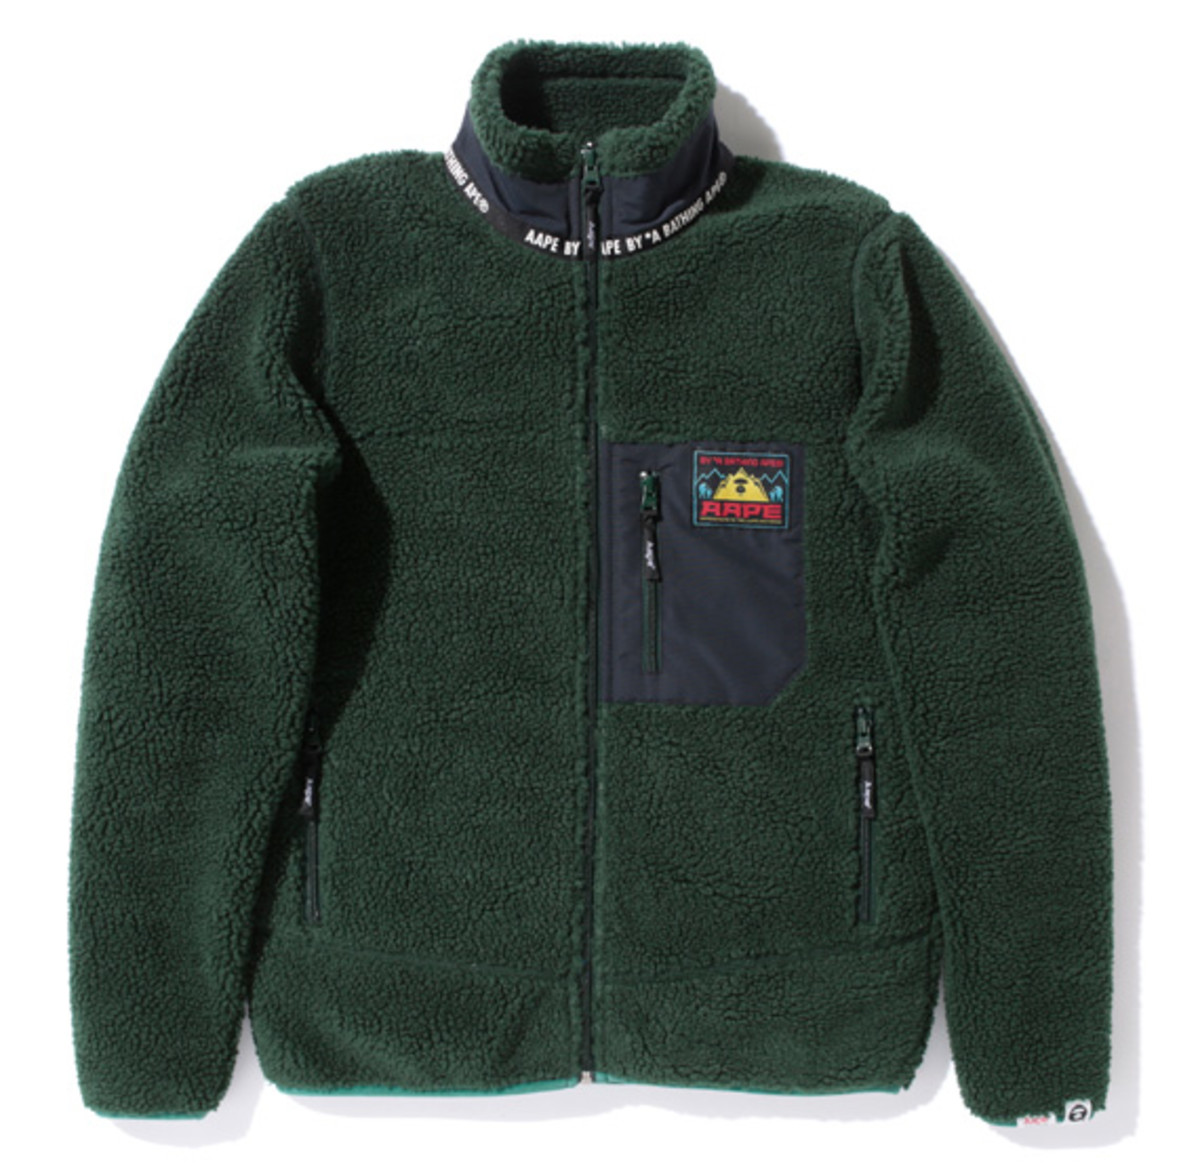 aape-outdoor-fleece-sweatshirt-01